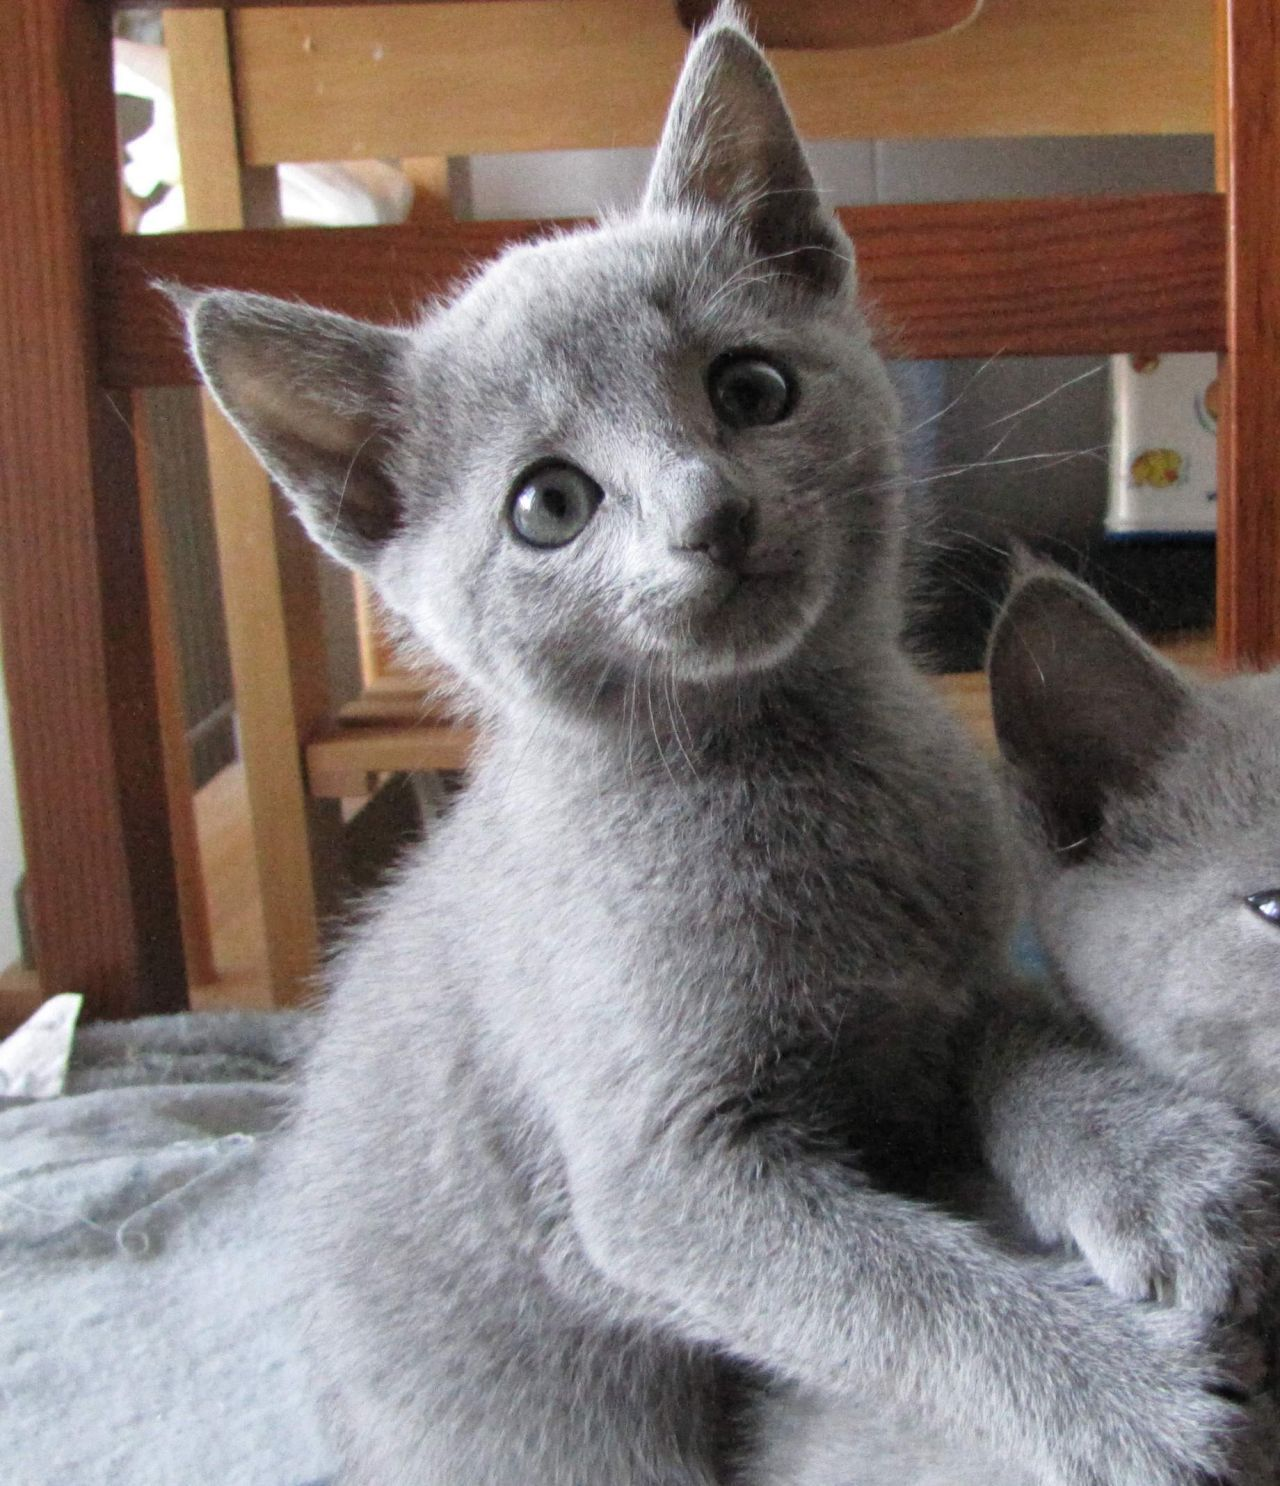 The Russian Blue Cat Is A Cat Breed That Comes In Colors Varying From A Light Shimmering Silver To A Darker Slate G Russian Blue Kitten Russian Blue Blue Cats